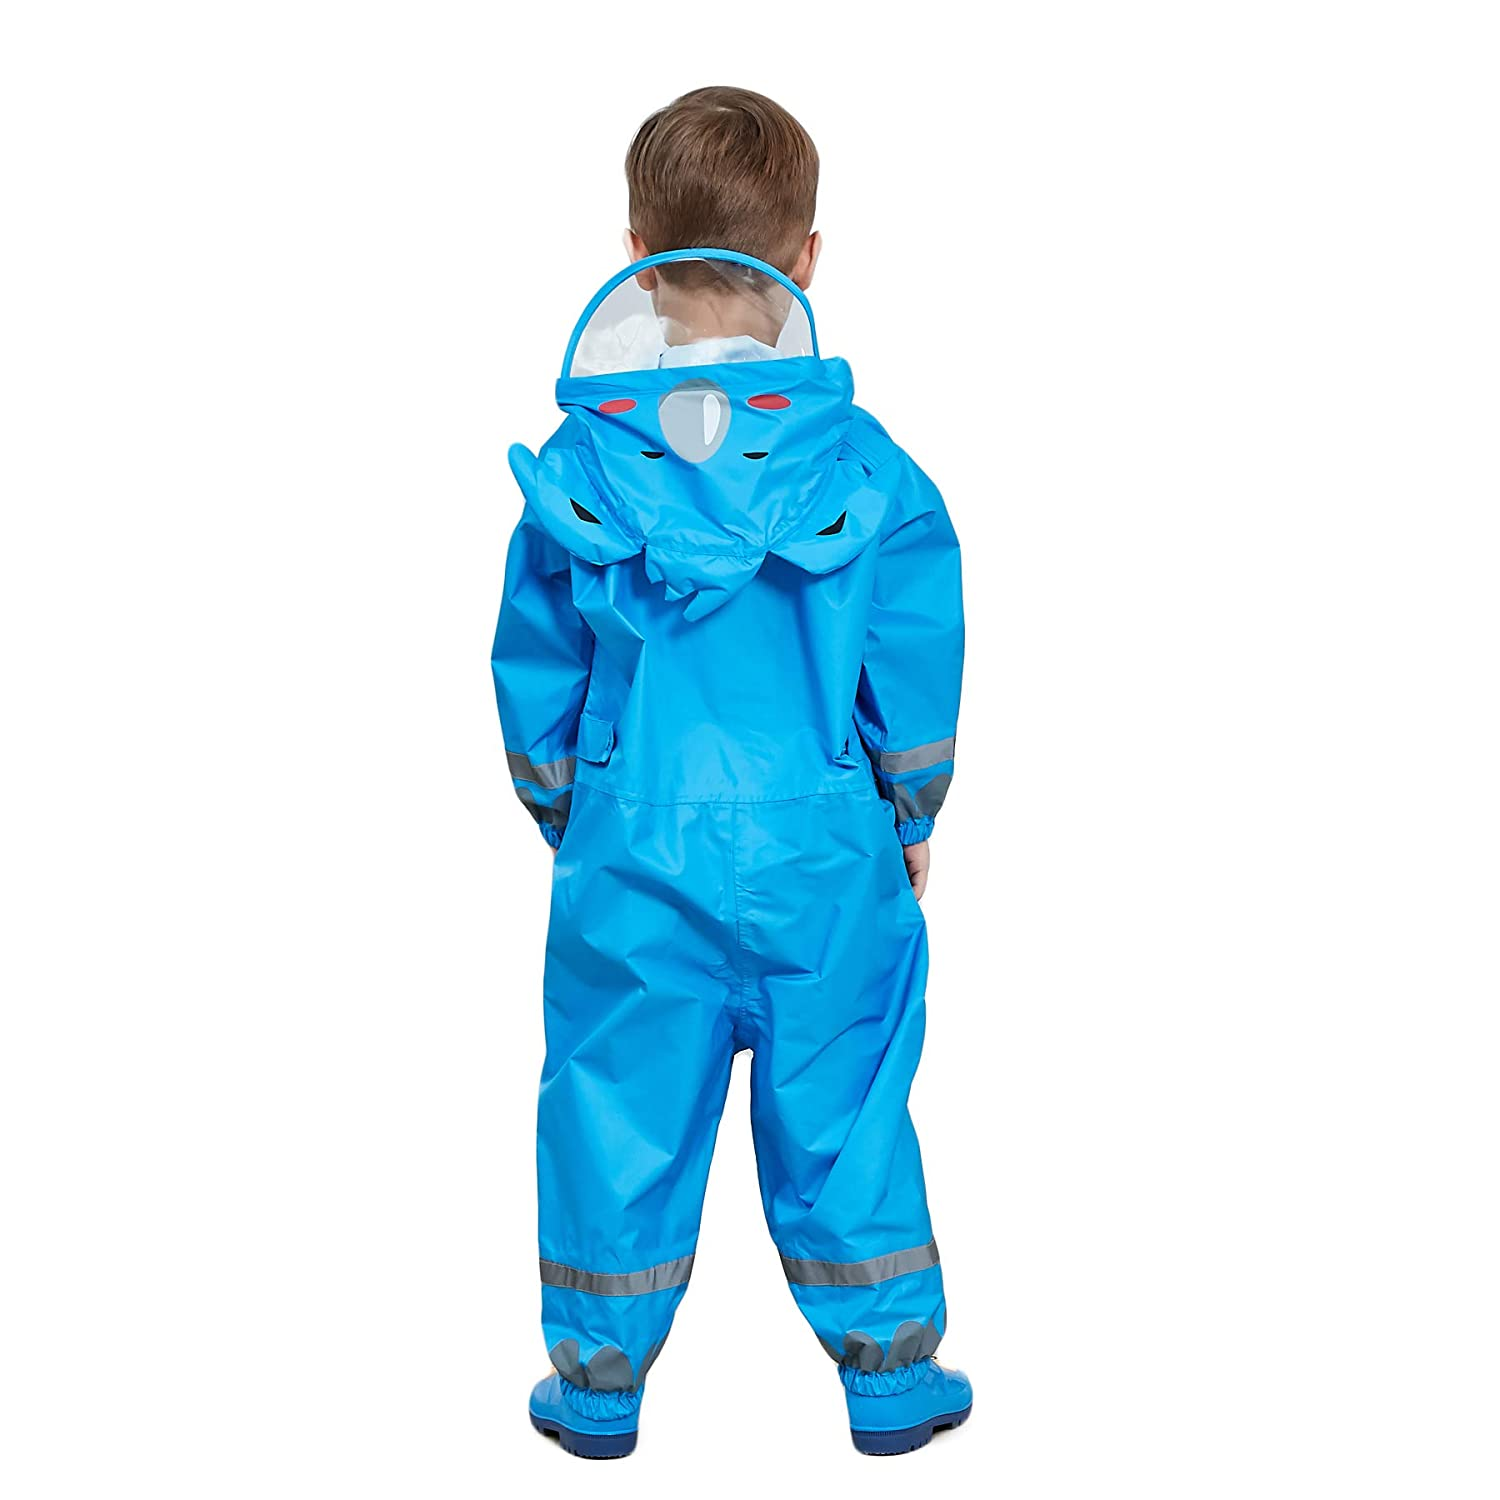 5cc7cbc90fca Bwiv 3D Cute Raincoat Kids Waterproof Breathable Rainsuit All in One Puddle  Suits Boys Girls Hooded Muddy Suit with Reflector Lightweight PVC ...